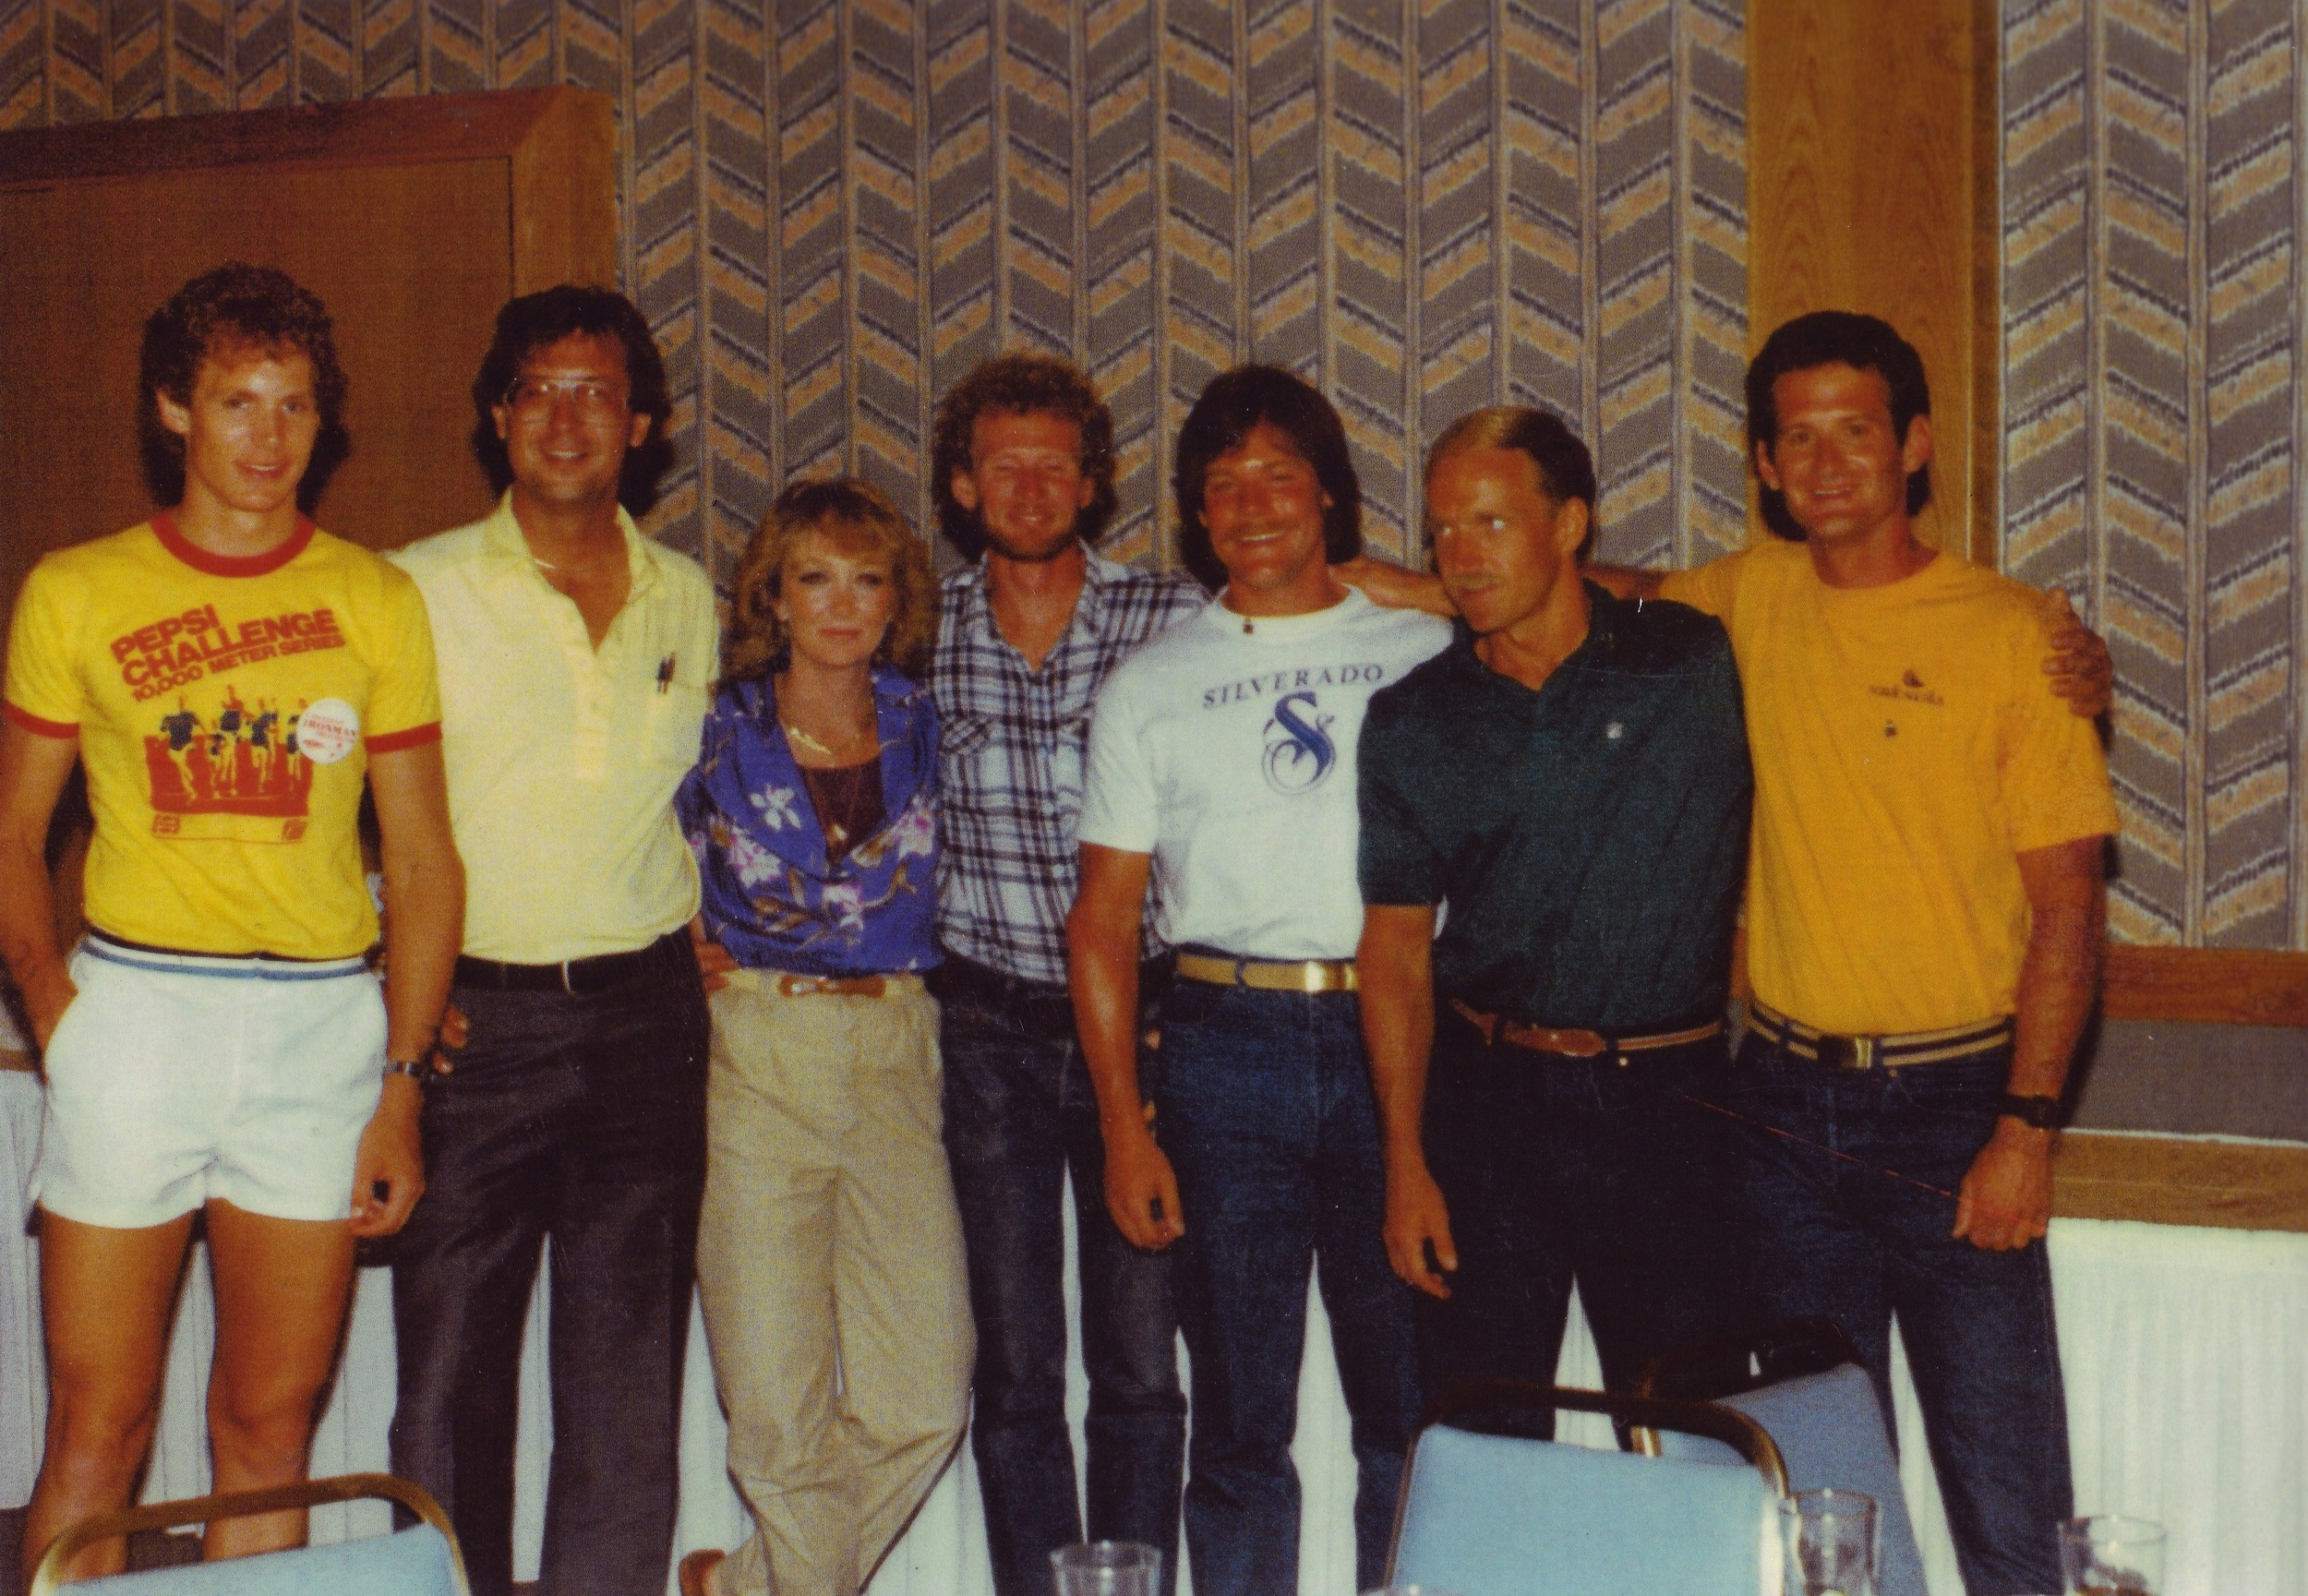 Lynn Van Dove with some of the original race finishers.